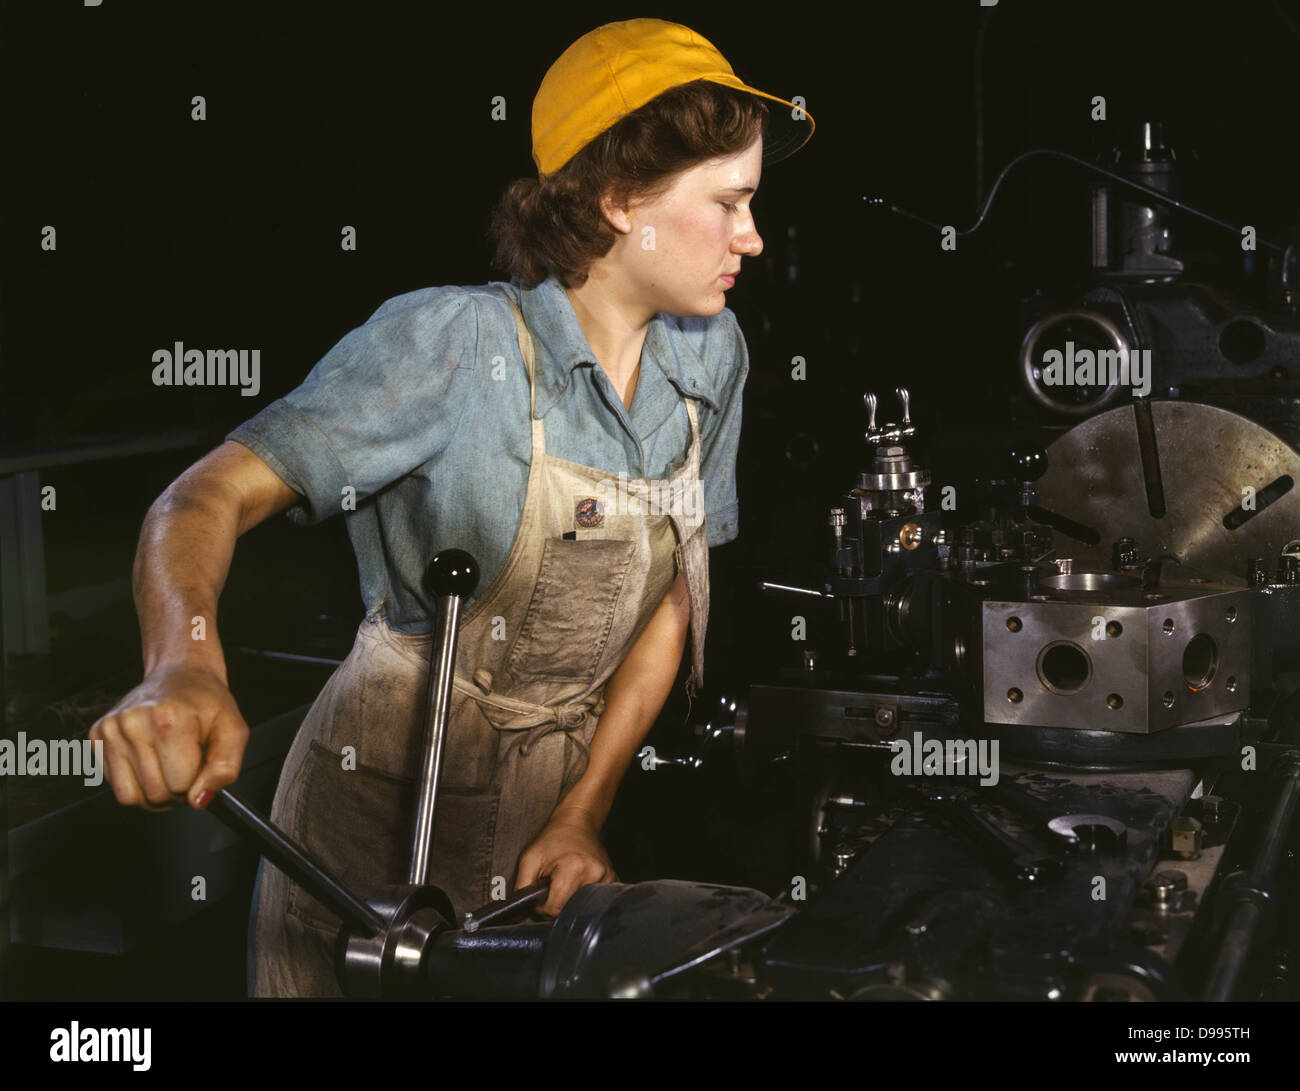 Female industrial worker, Second World War, USA 1940's - Stock Image